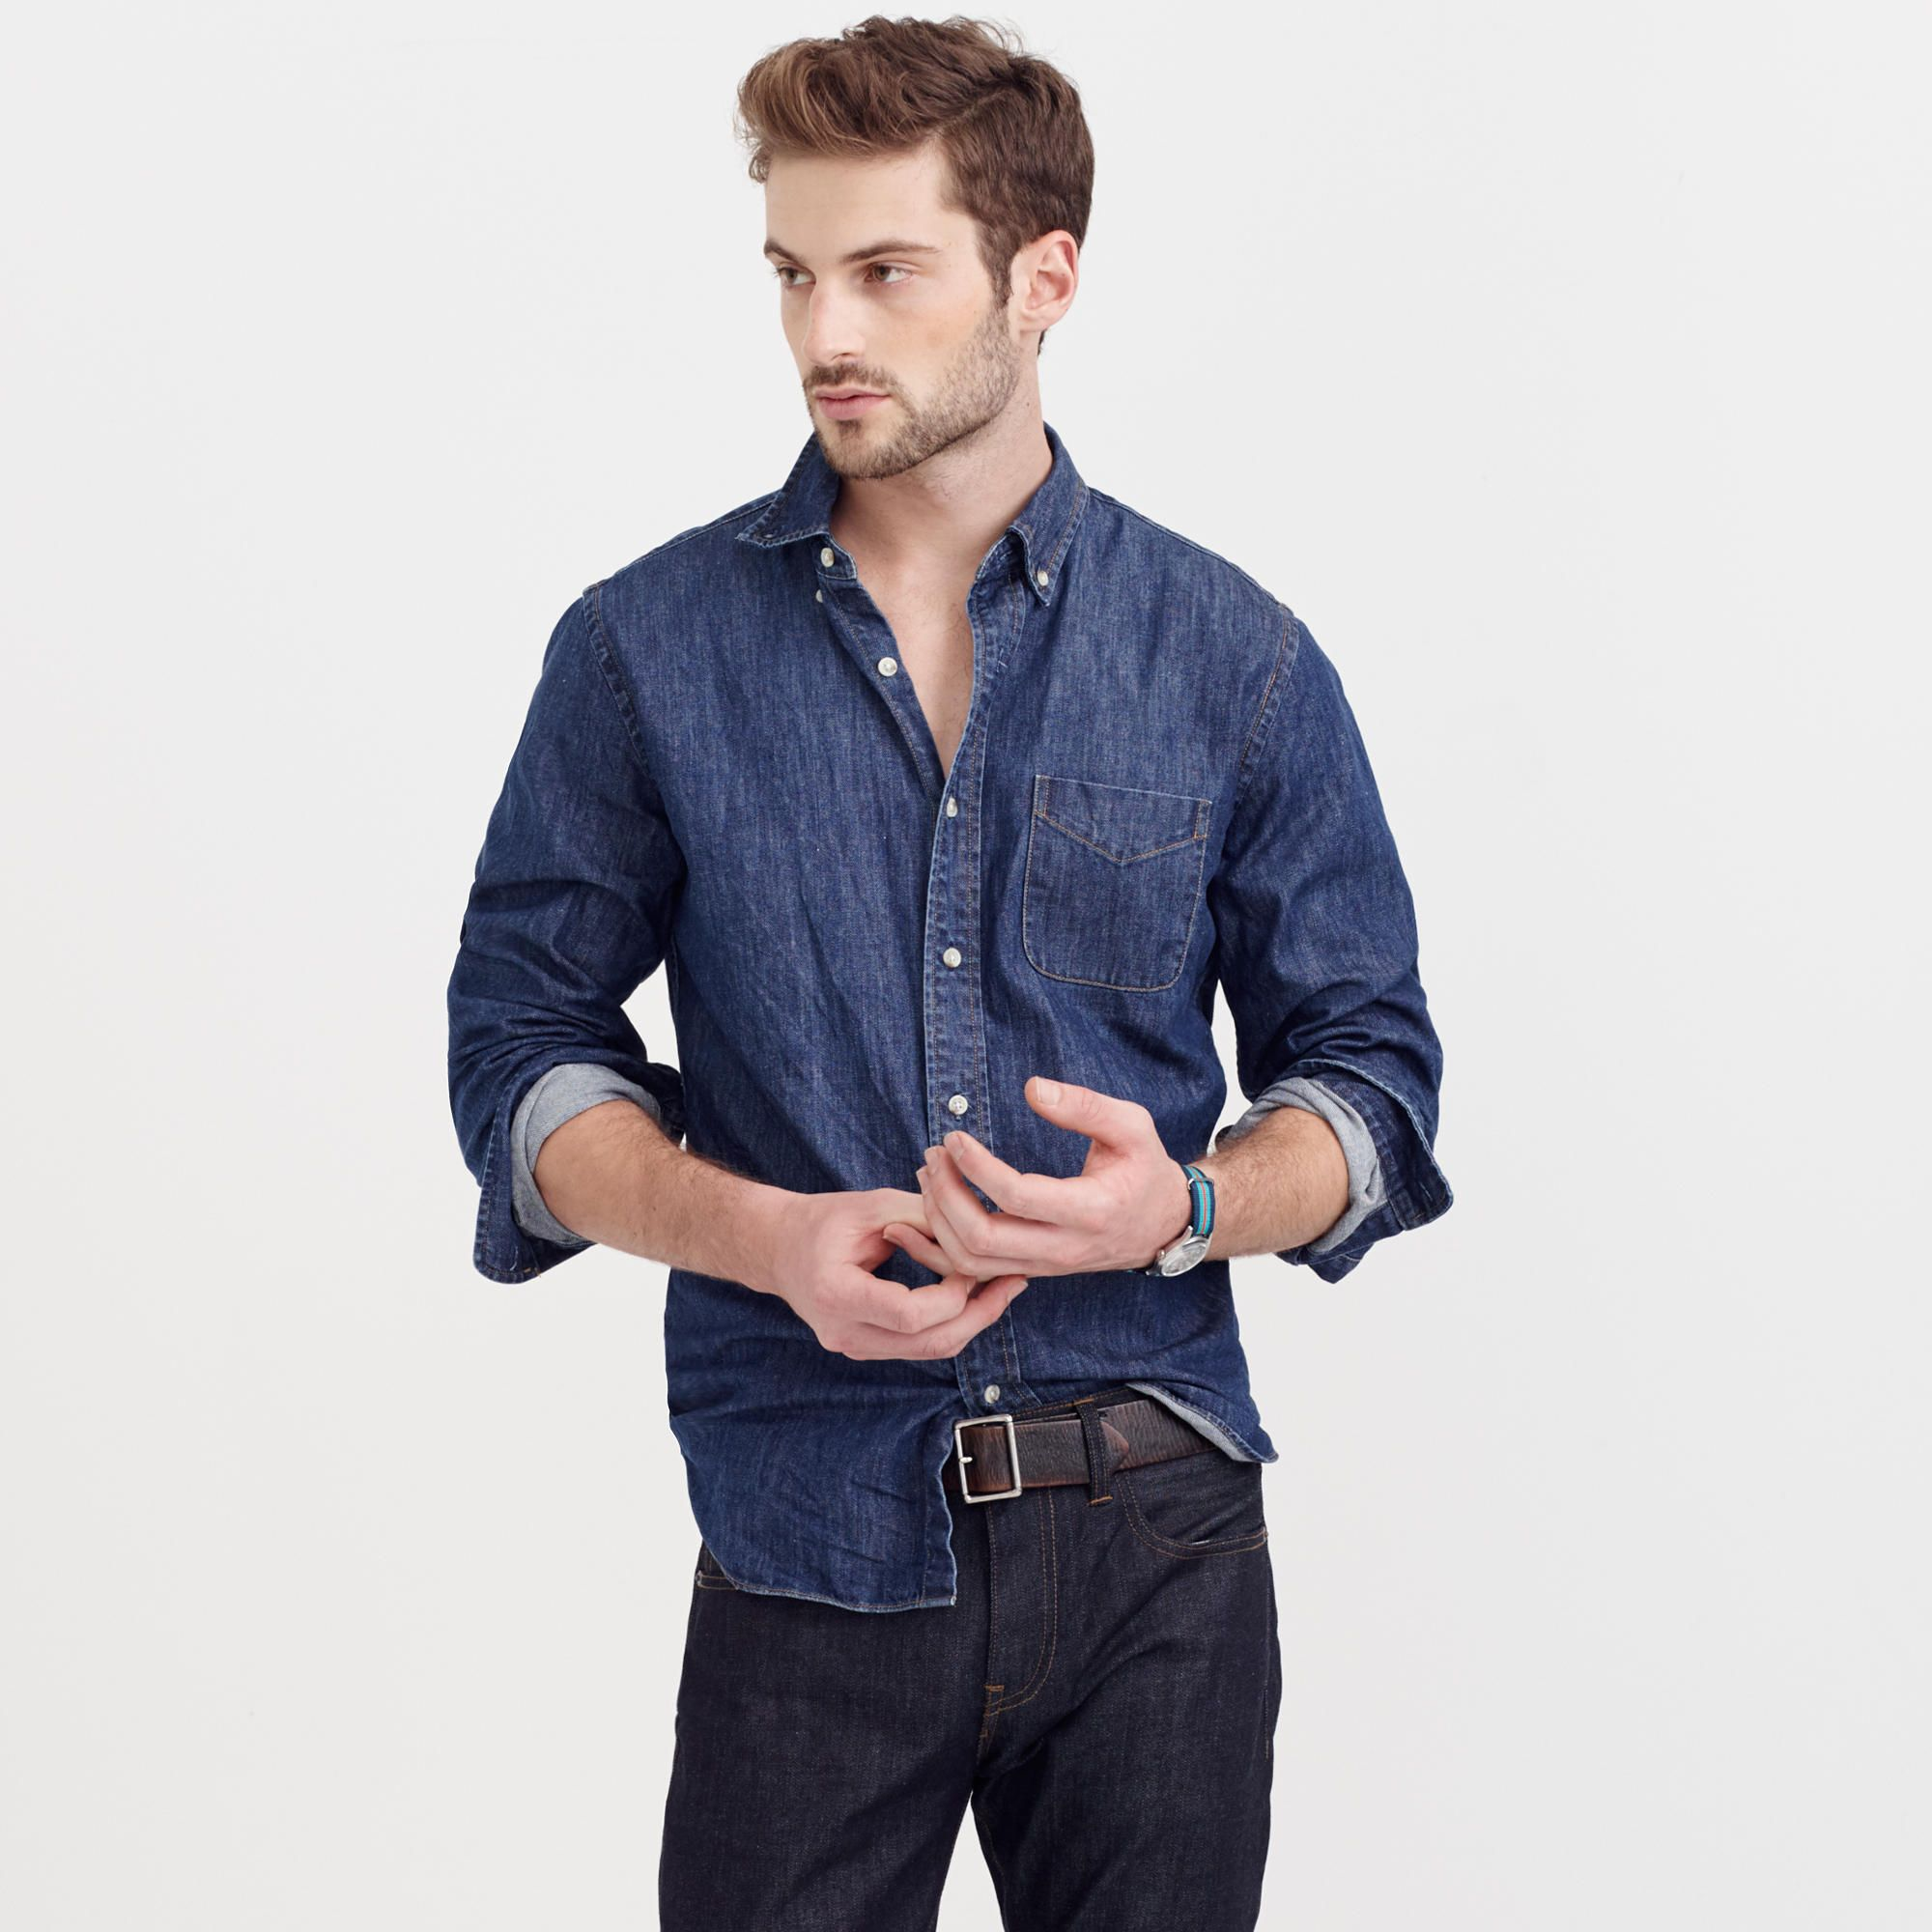 92f3ad9dc8 Shop the Slim Midweight Denim Shirt at JCrew.com and see our entire  selection of Men s Shirts.